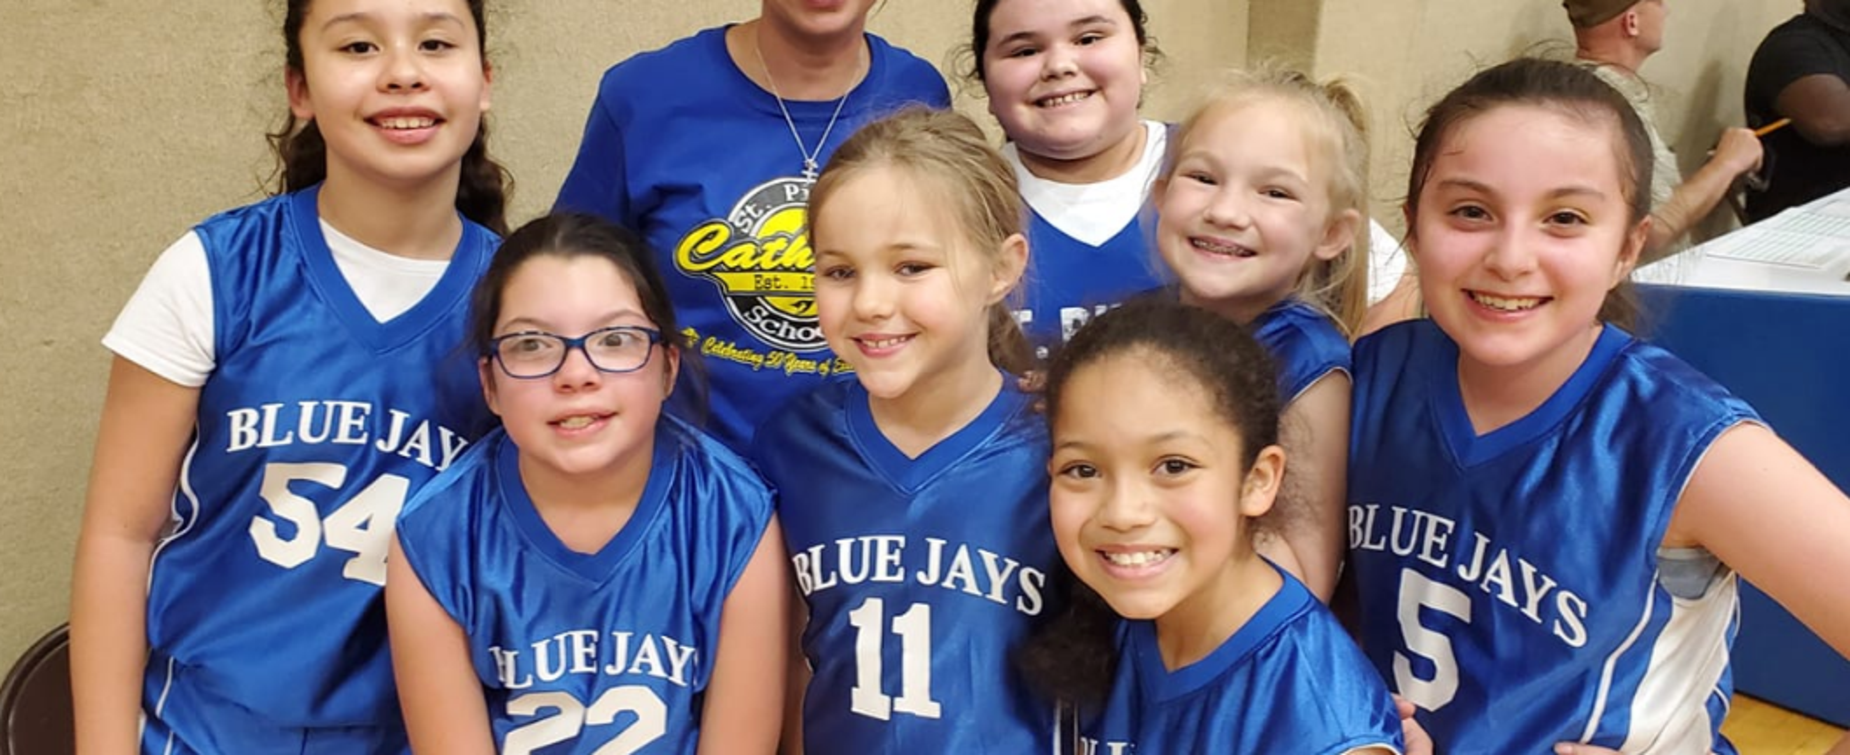 Bluejays Sports Team